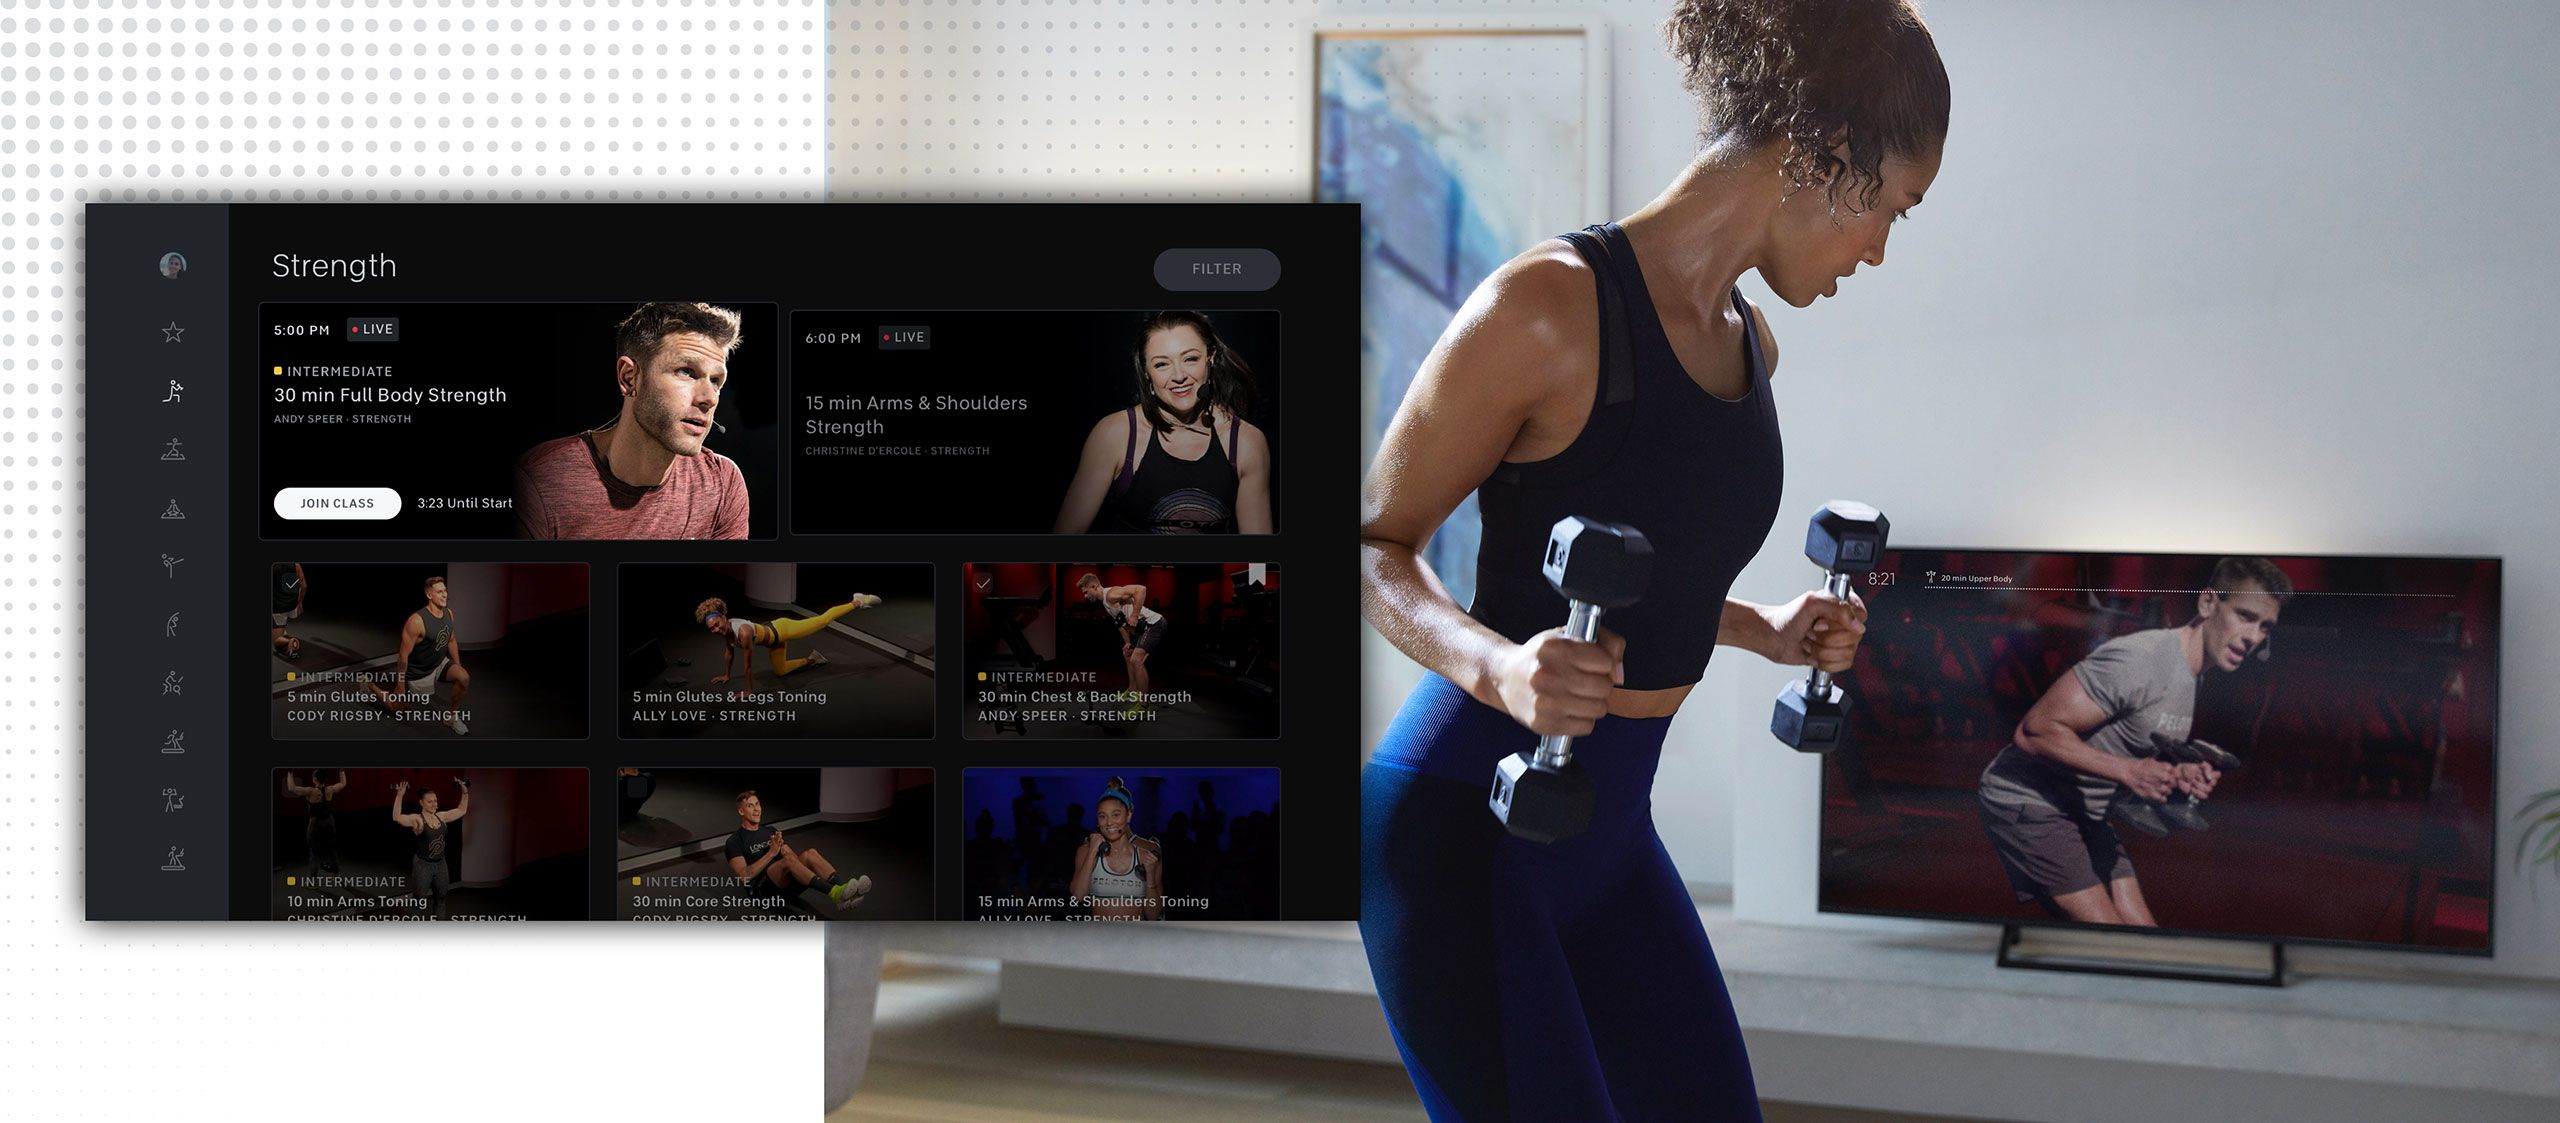 High-End Fitness Phenomenon, Peloton, Launches New Apple Watch App and More